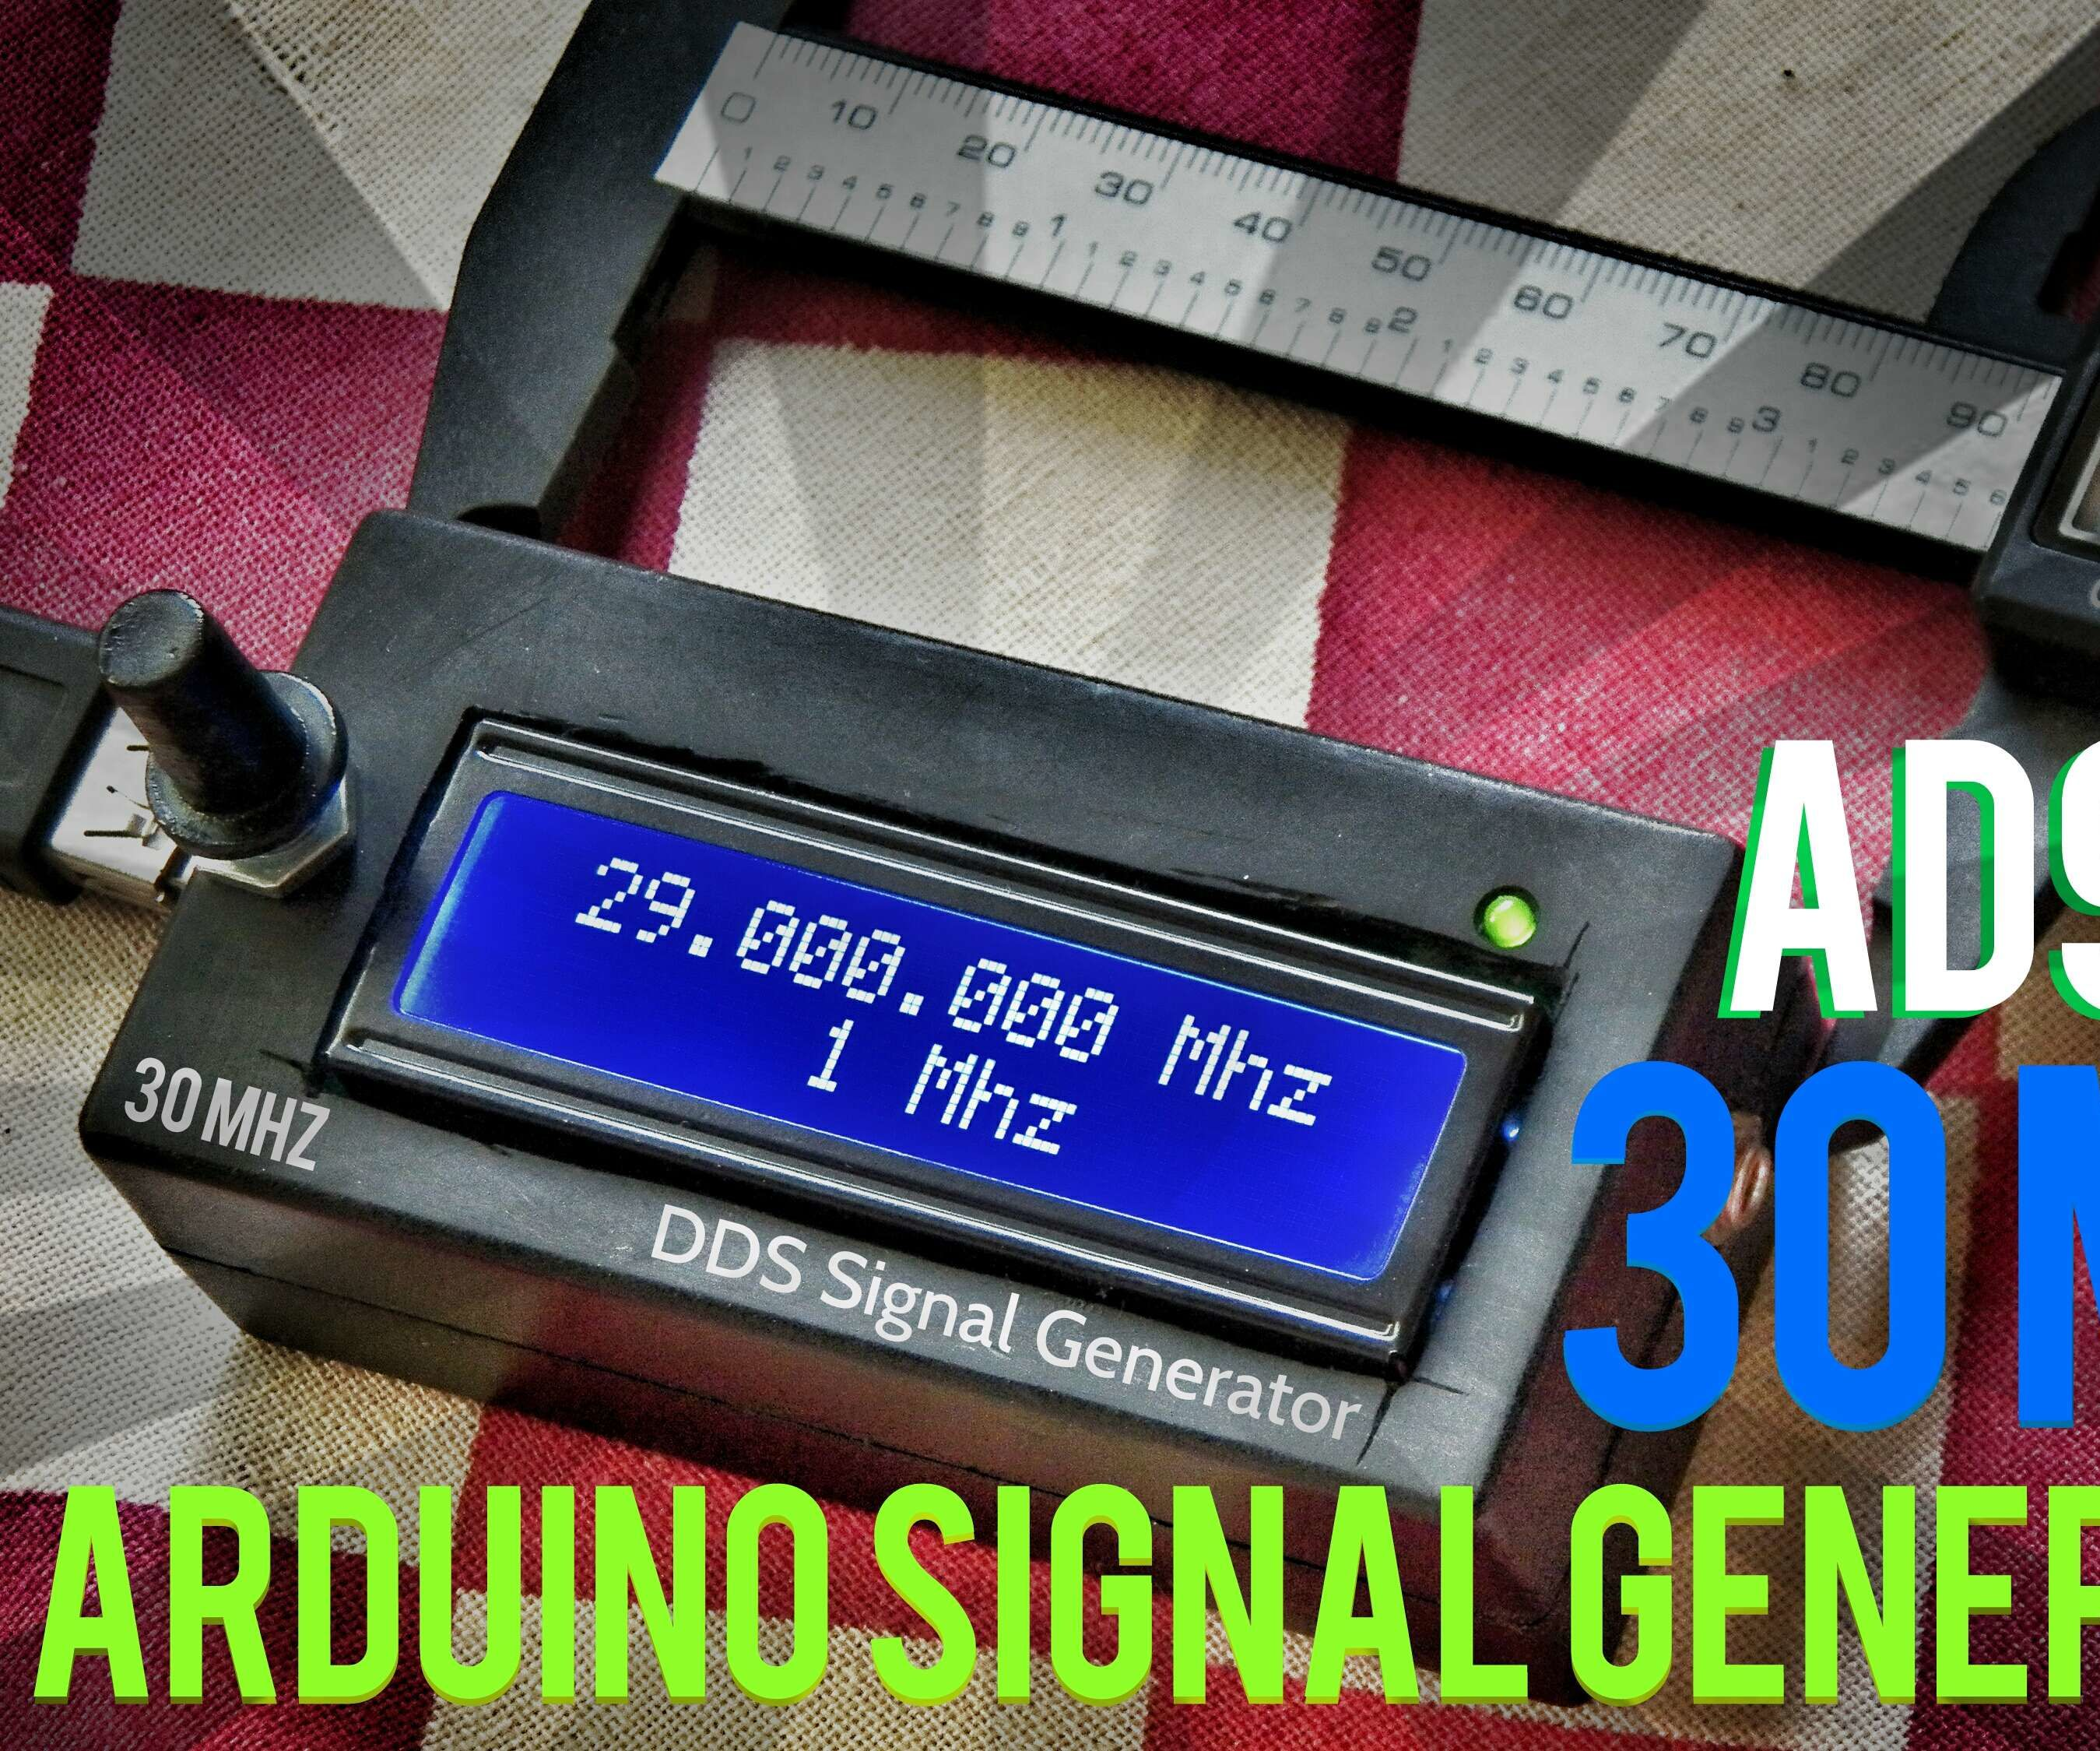 Arduino + AD9850 30MHZ DDS Signal Generator in 12$: 4 Steps